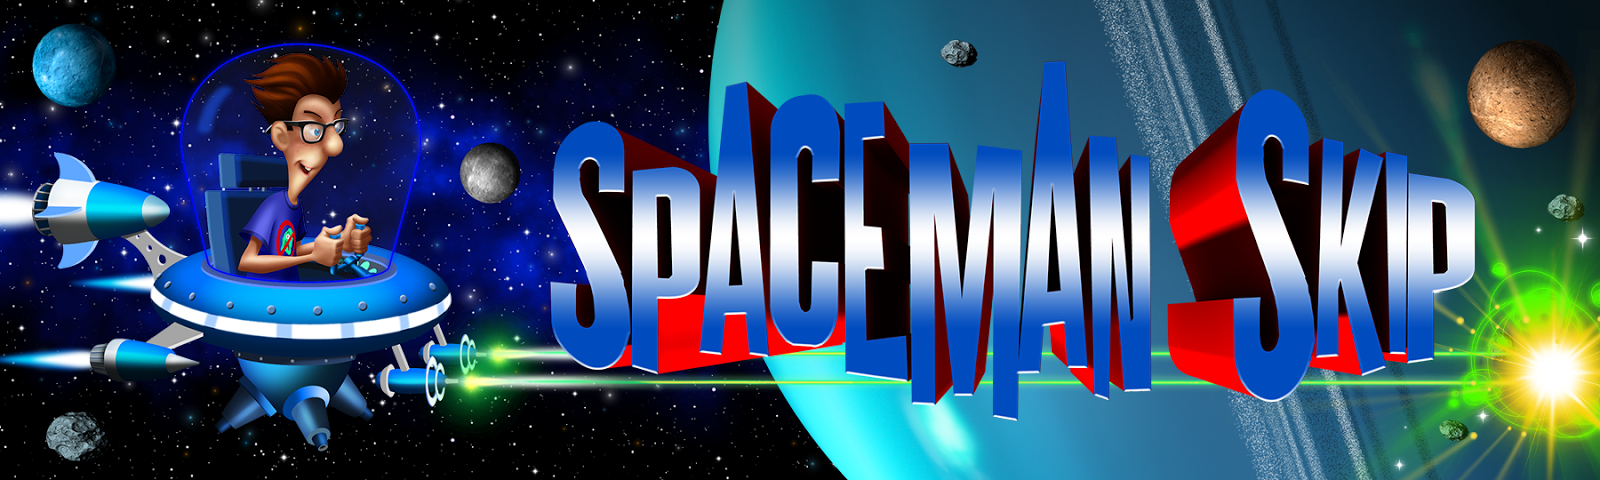 http://spacemanskipapp.blogspot.com/p/about-spaceman.html